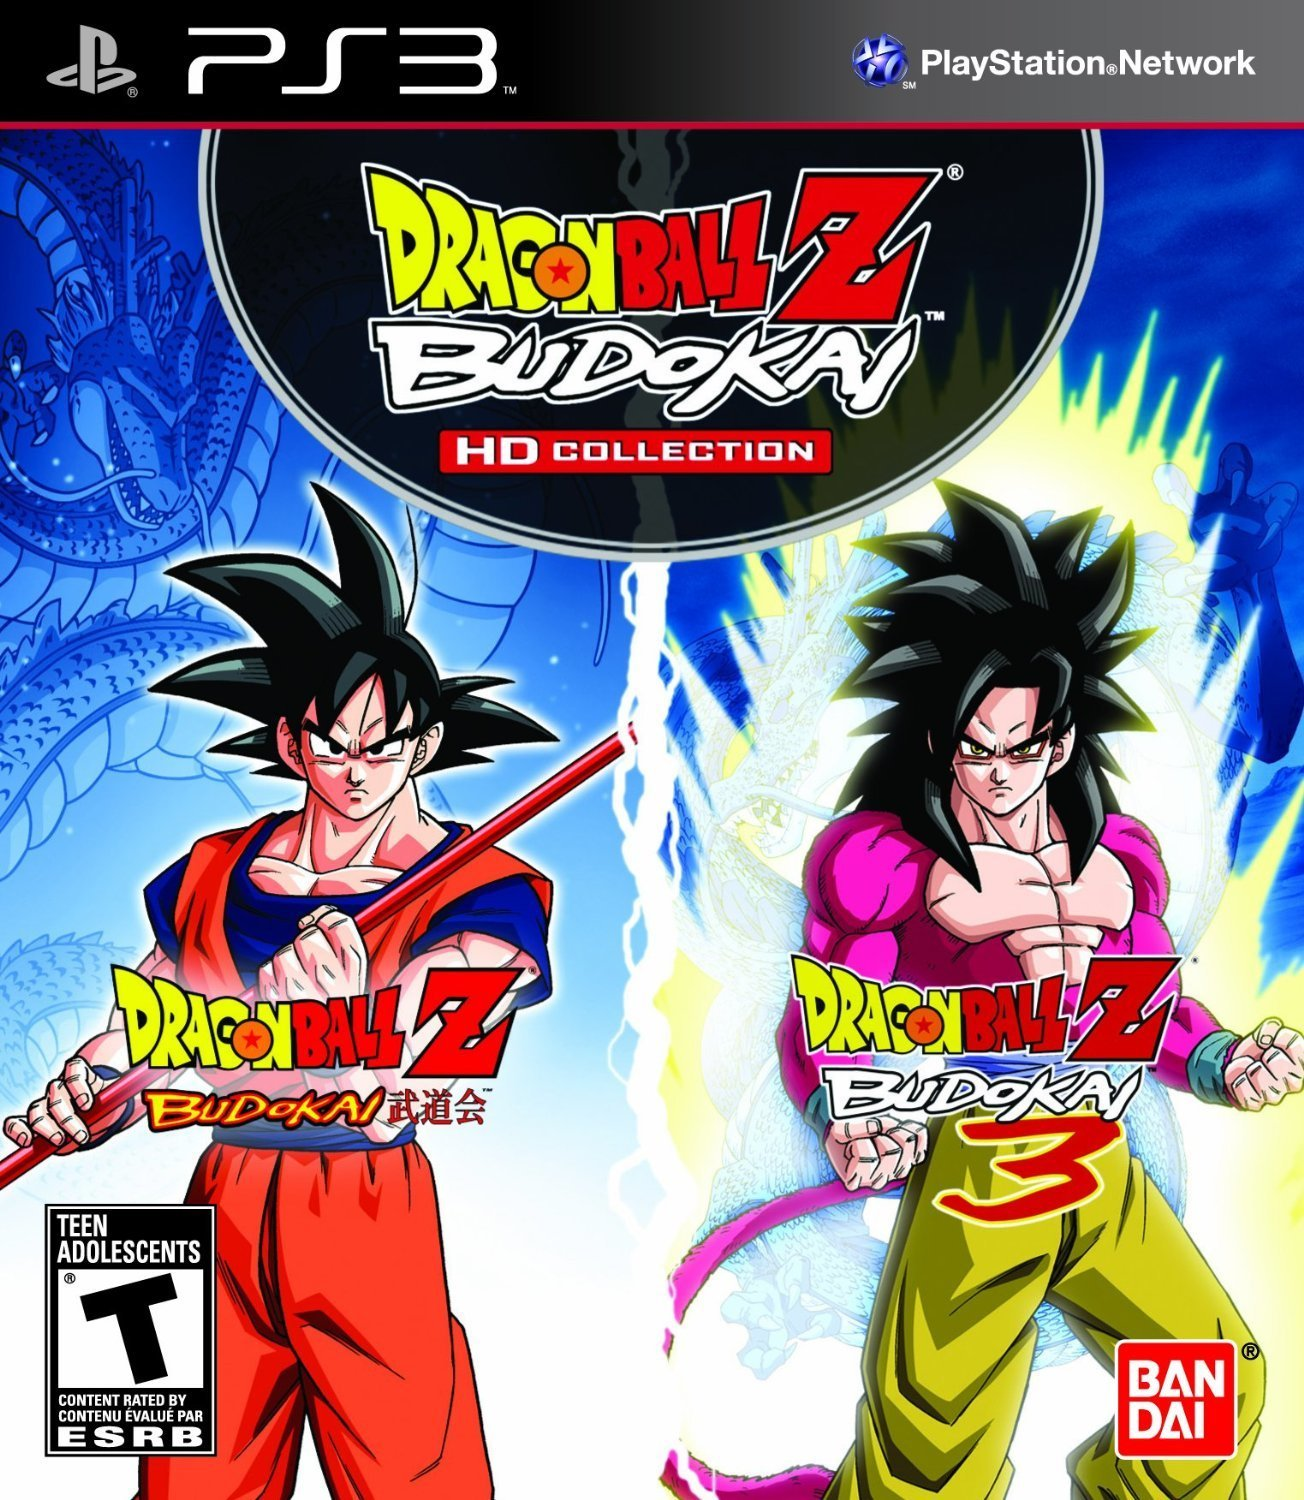 Dragon Ball Z Budokai Hd Collection-PlayStation 3 By:Sony Eur:12,99 Ден2:799